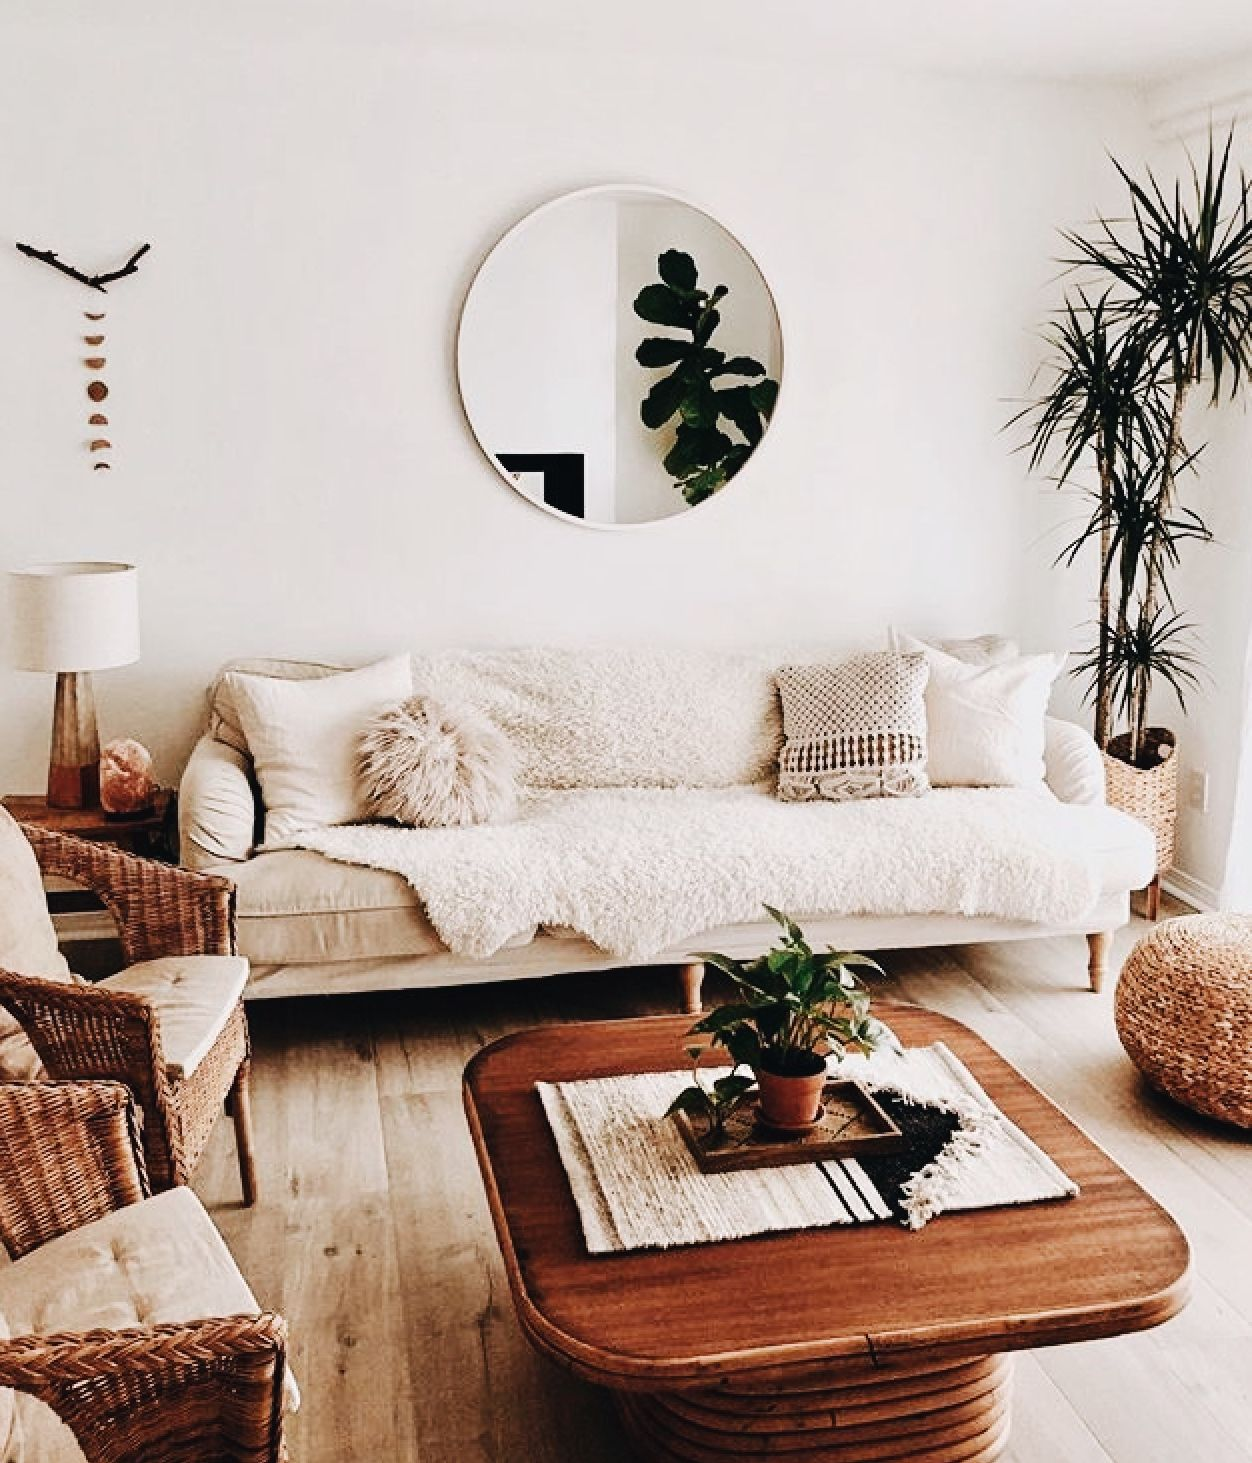 bohemian 70s style living room | InteriOr | Pinterest | Living rooms ...